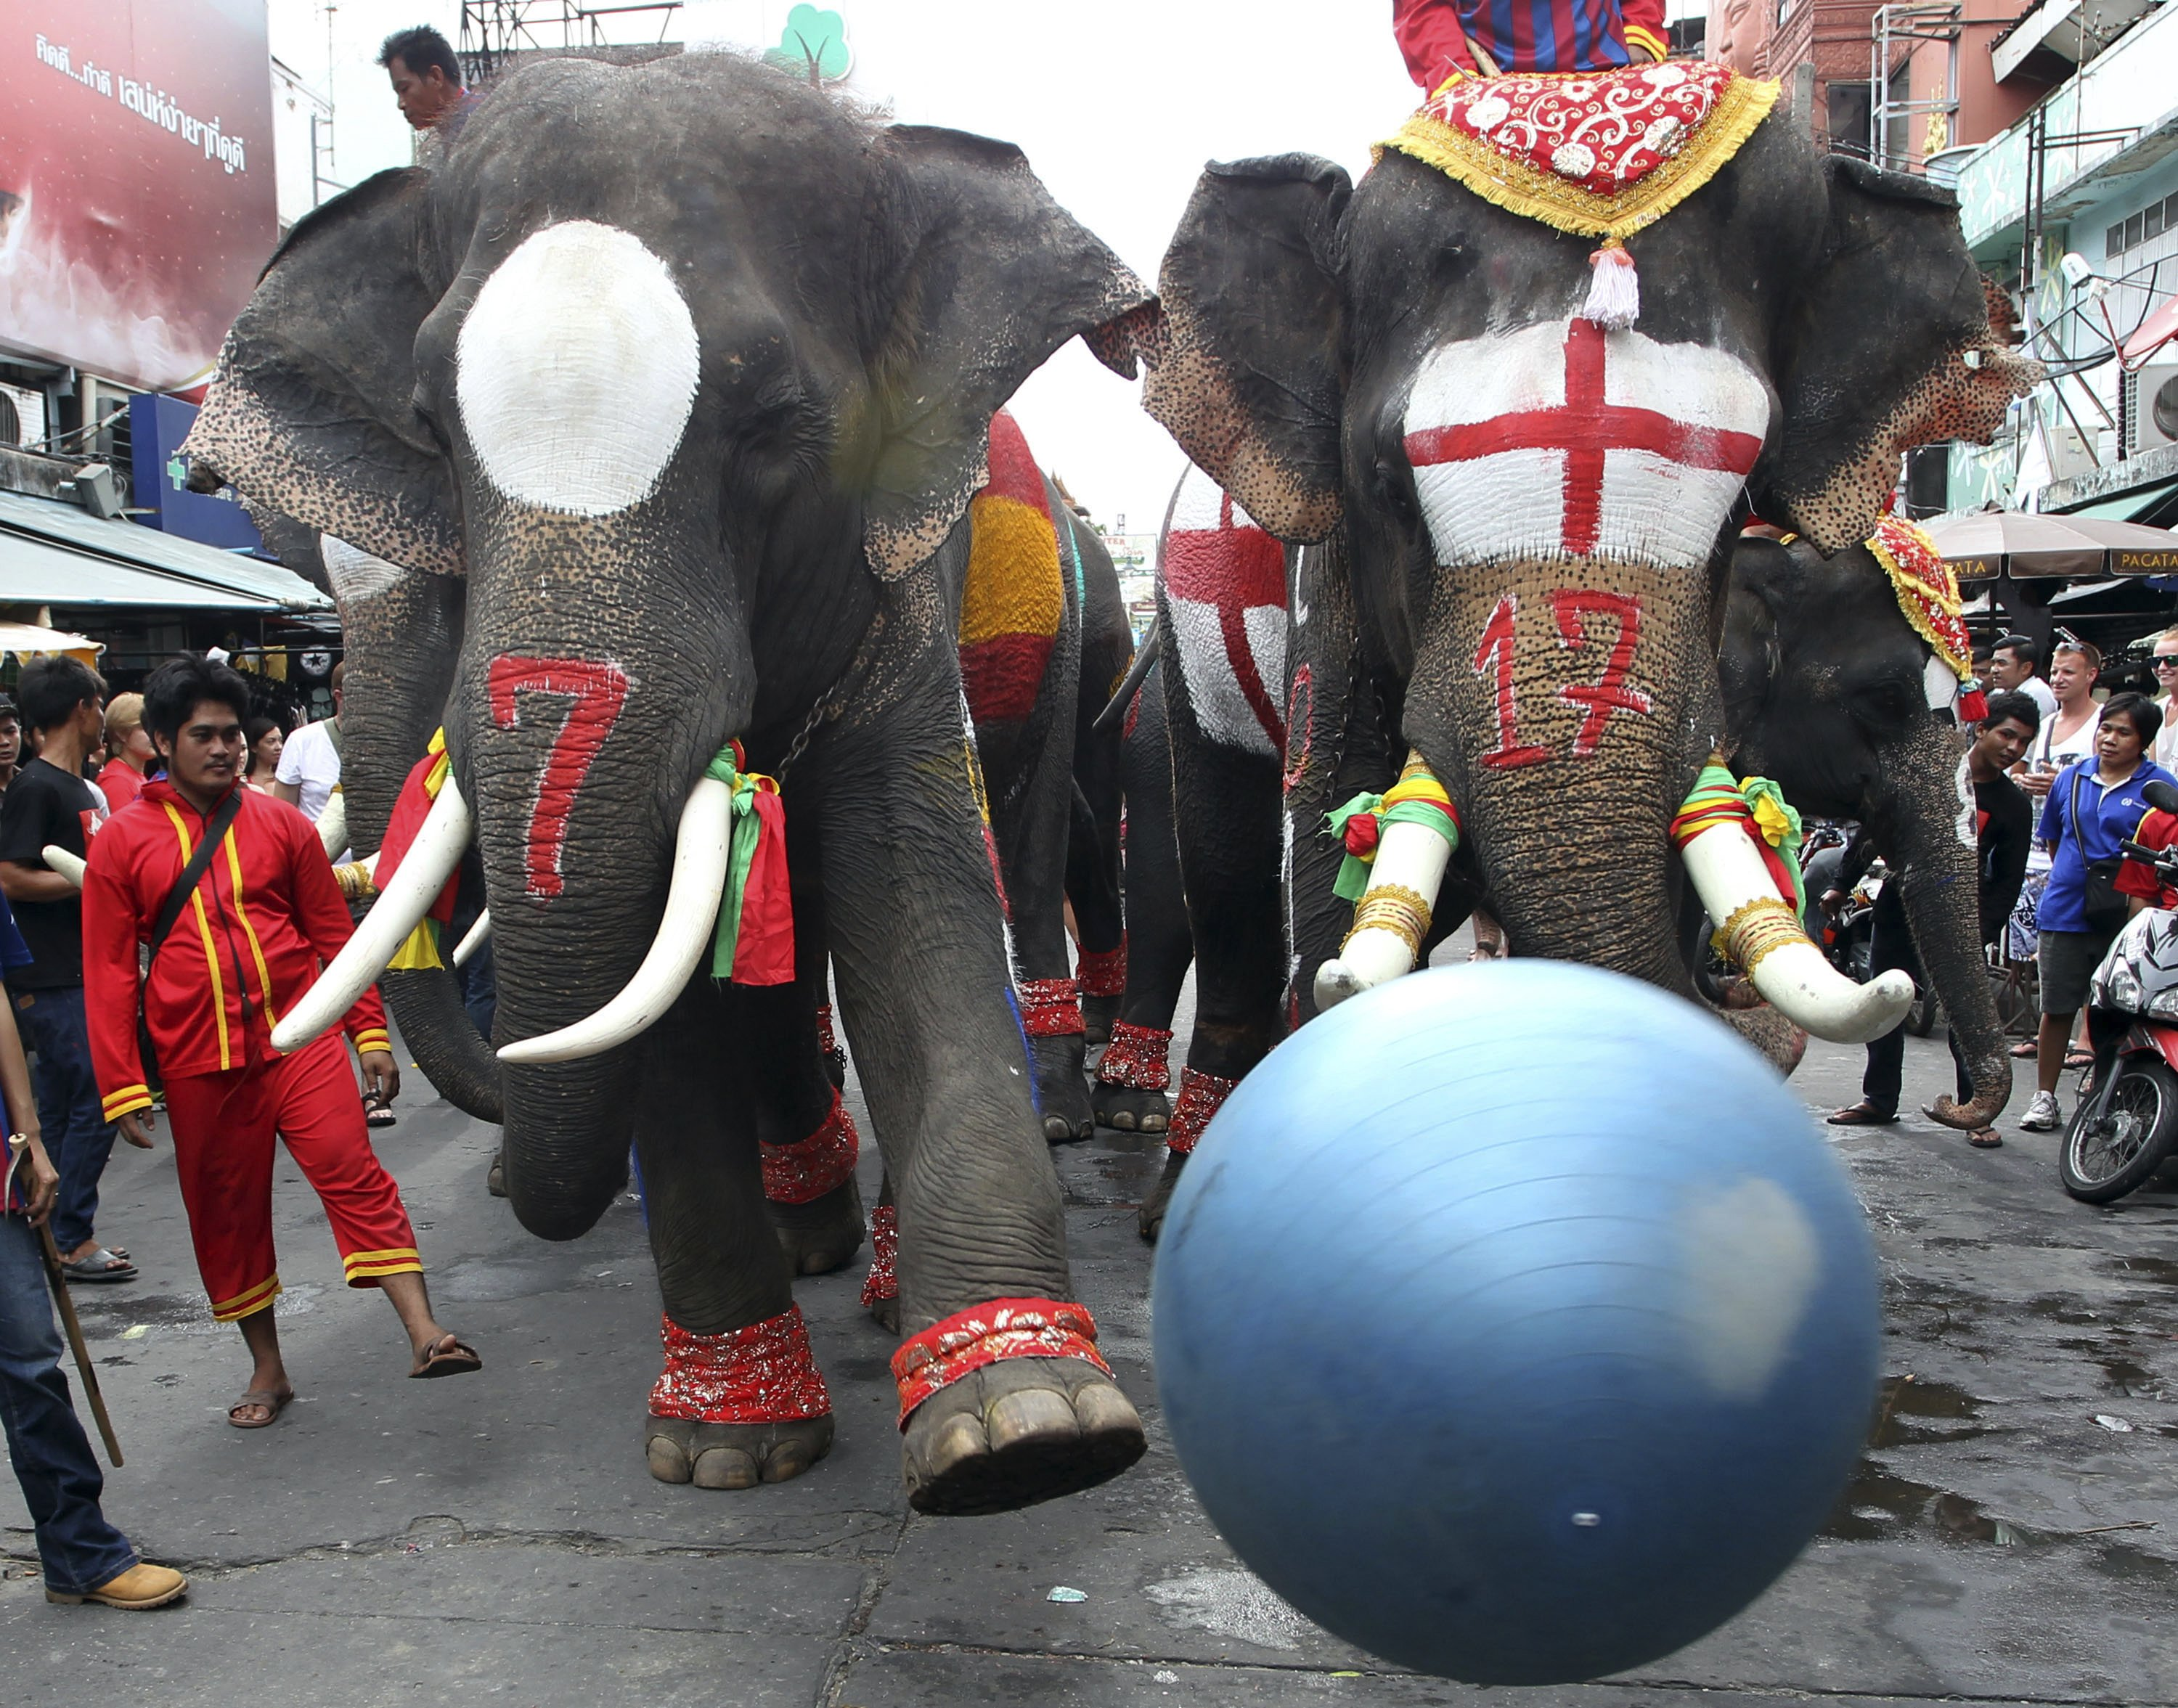 Elephants fight for the ball during an event to celebrate the opening of the World Cup soccer tournament in Brazil at a popular tourist destination in Bangkok, Thailand on Friday, June 13, 2014.